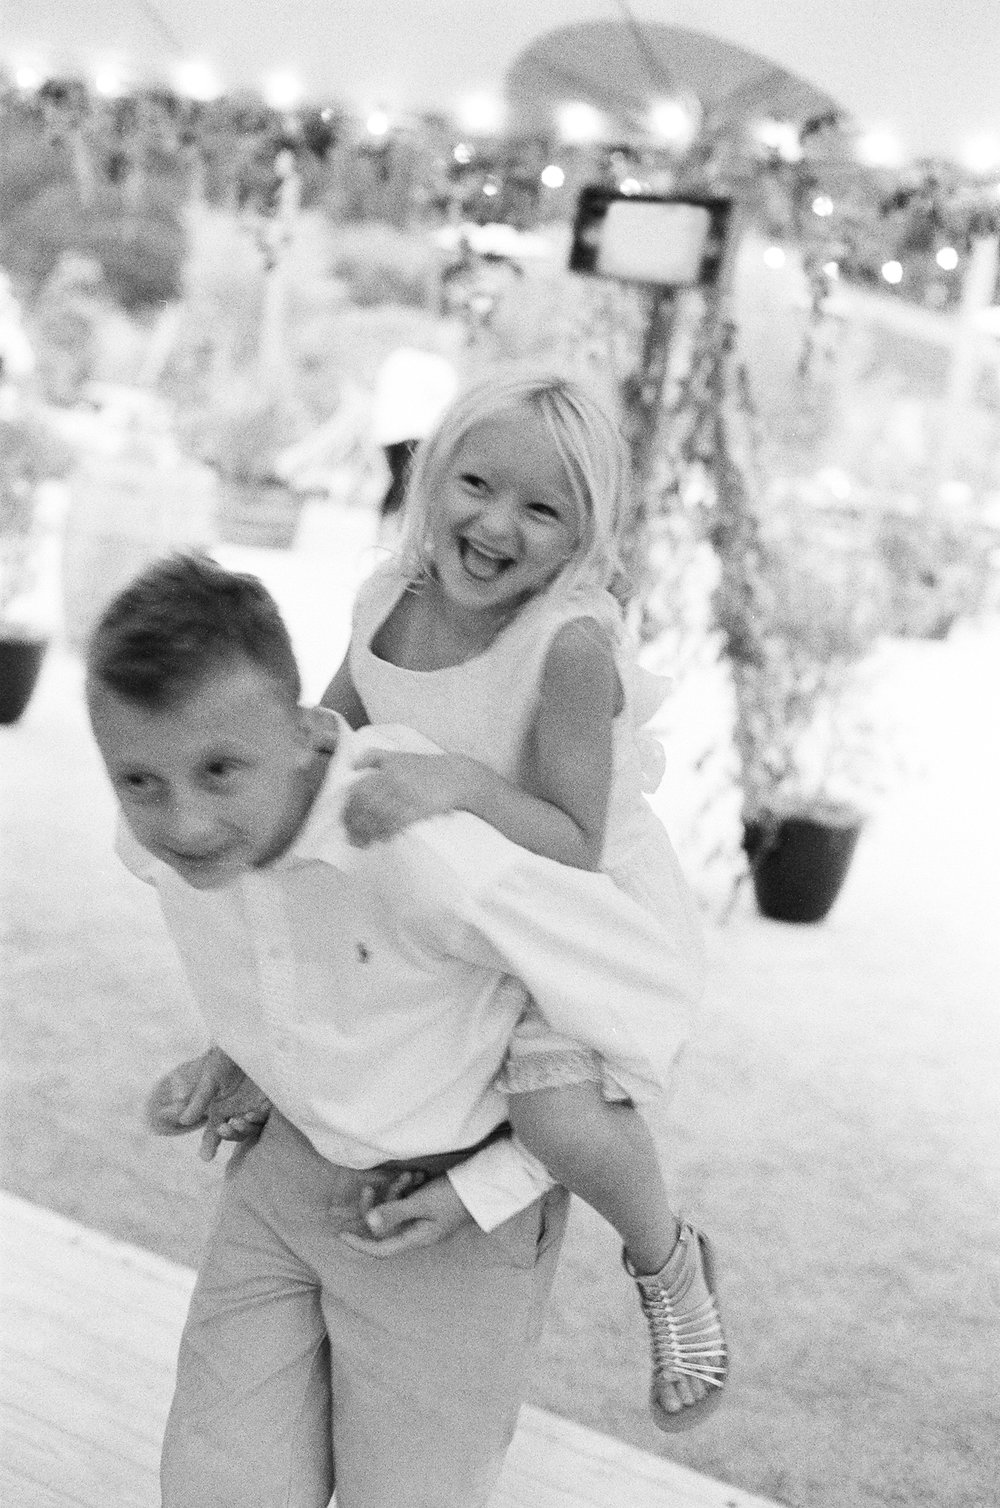 43-piggy-back-ride-wedding.jpg